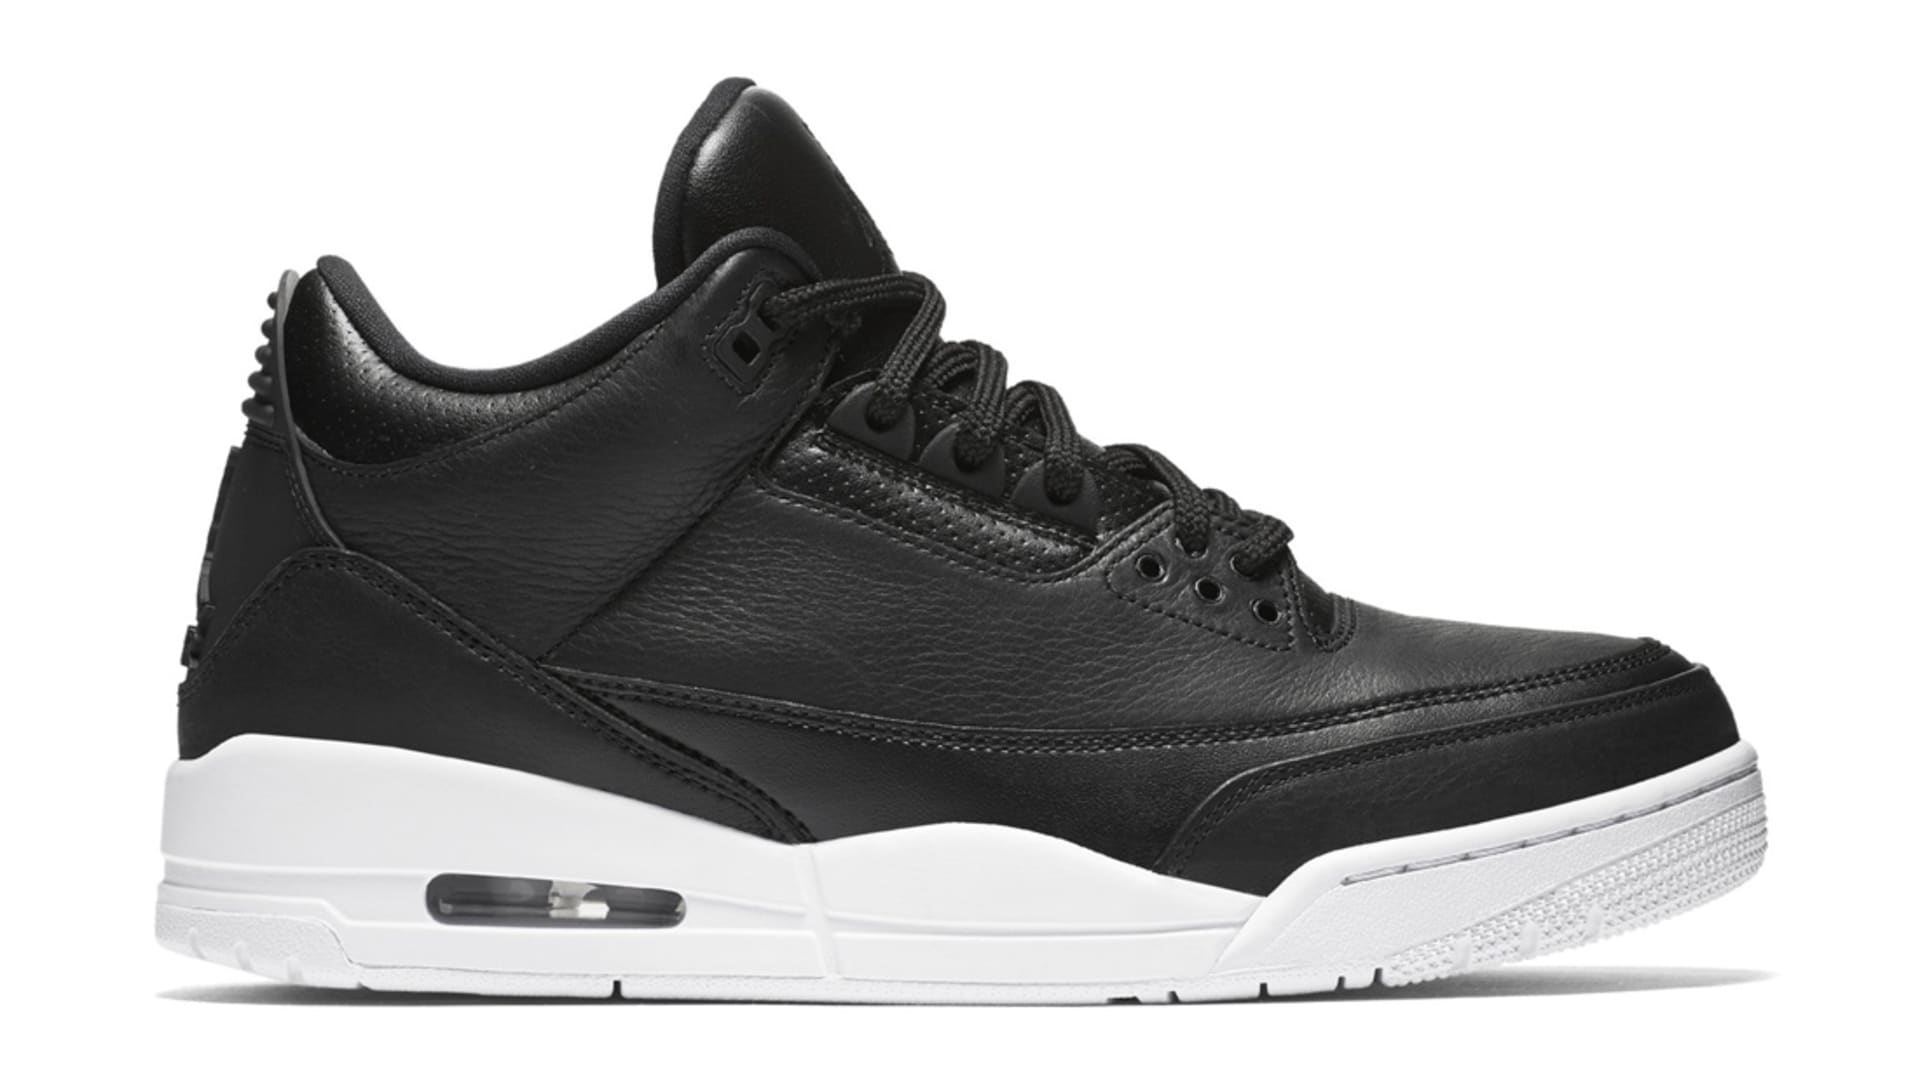 cff3b125c Air Jordan 3 Retro Cyber Monday Sole Collector Release Date Roundup